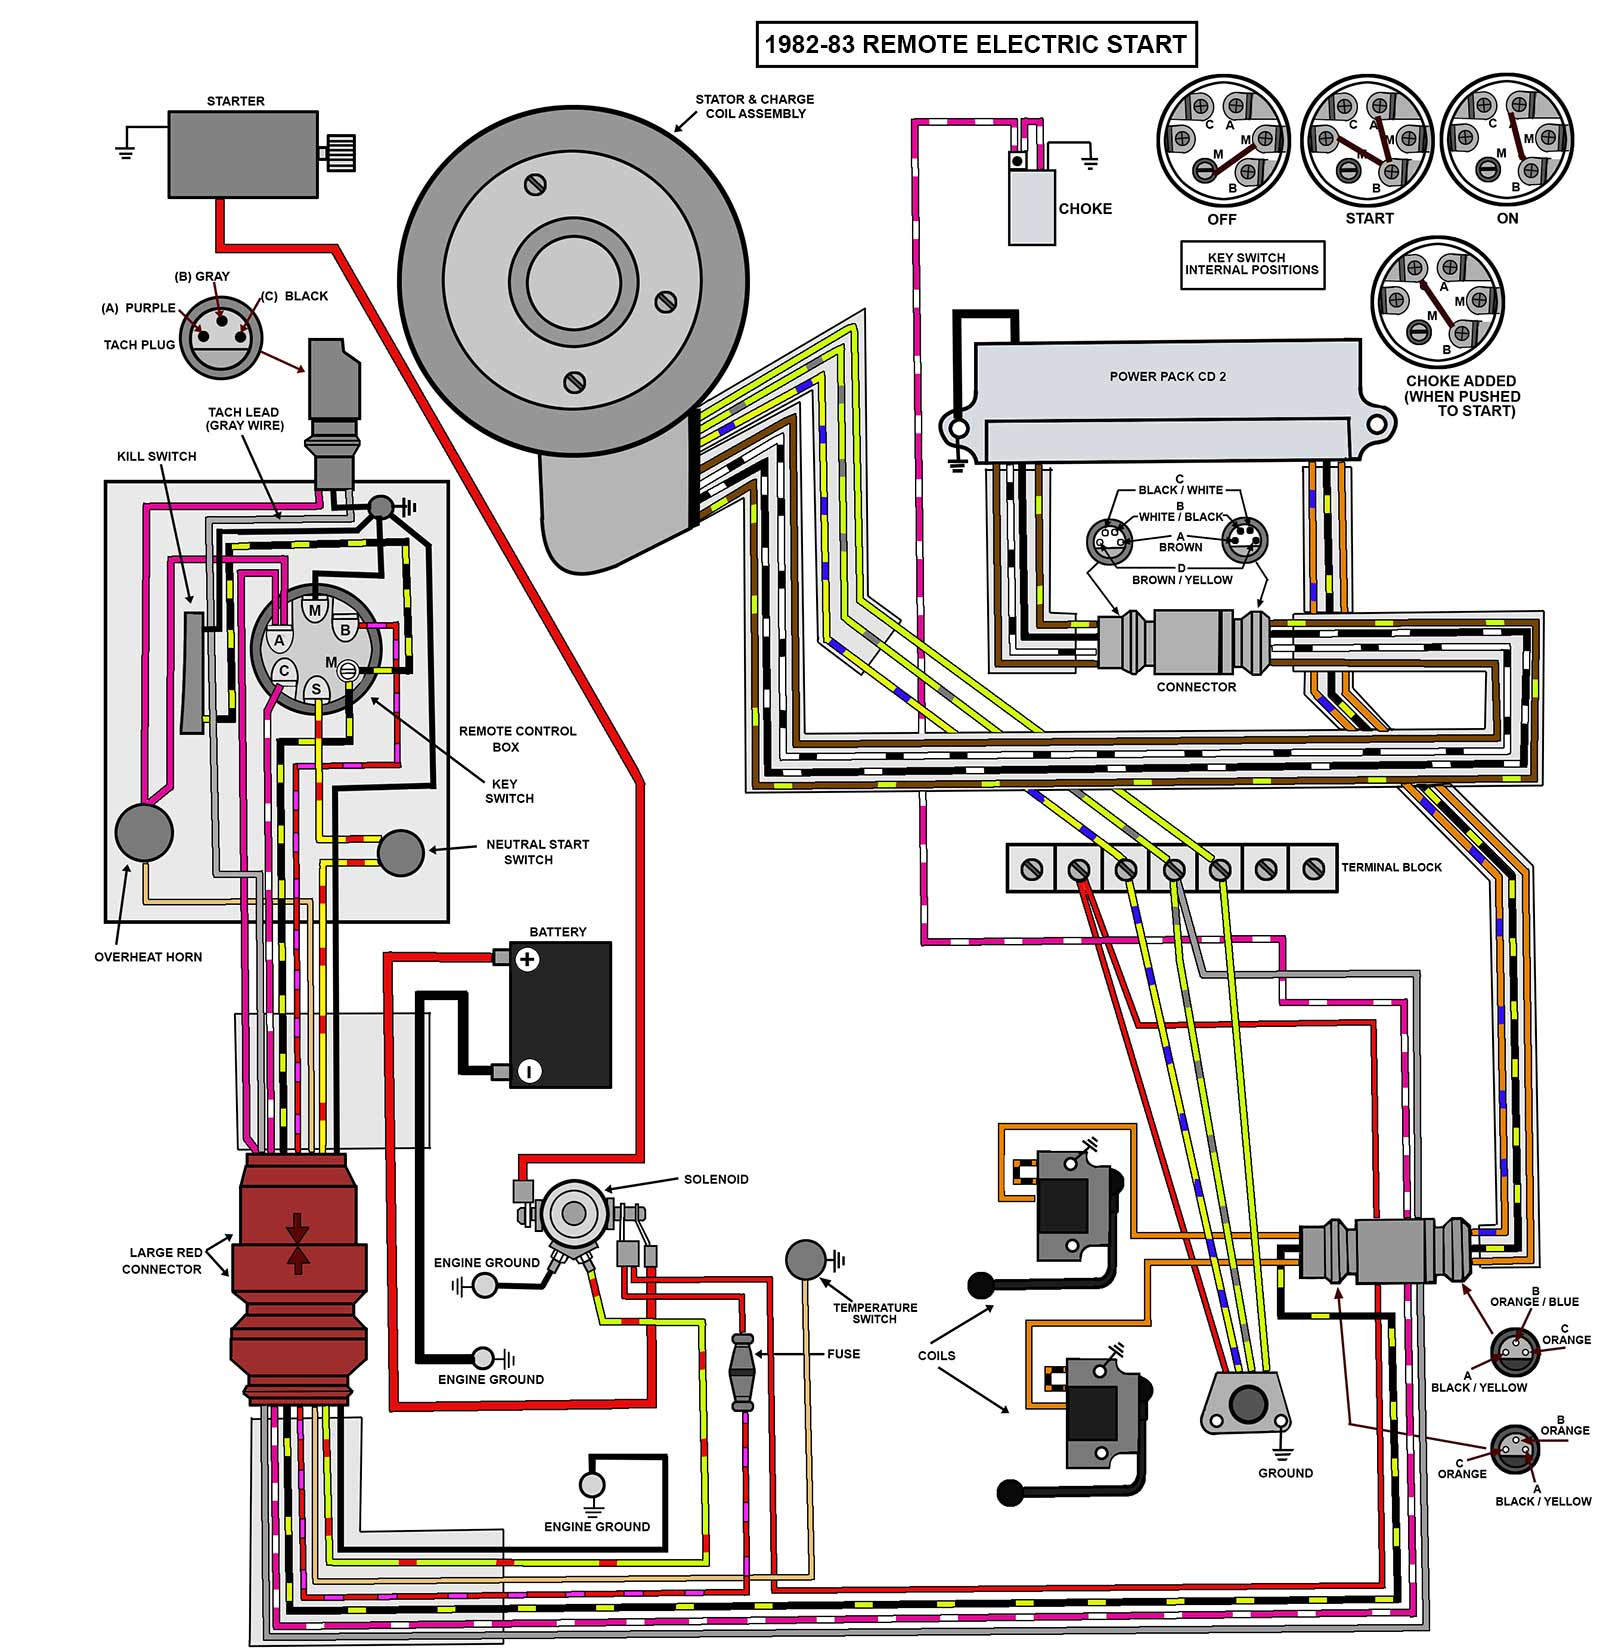 mastertech marine evinrude johnson outboard wiring diagrams 135 Mercury Control Box Wiring Diagram 25 35 hp electric start remote 1982 83 7 Pin Wiring Harness Diagram